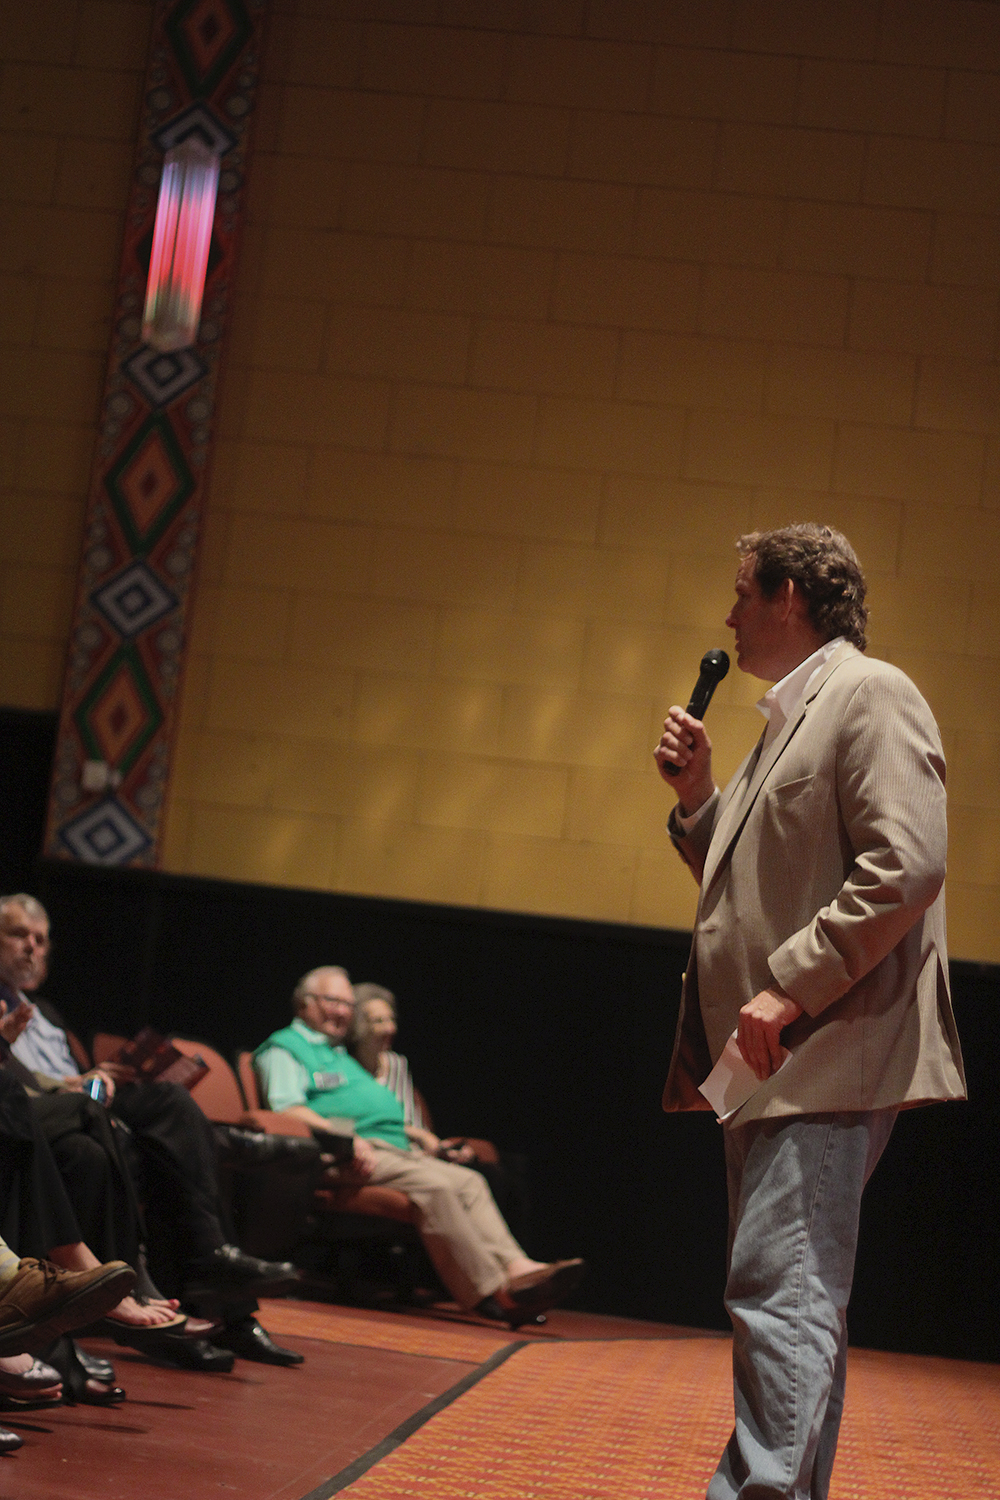 Rick Schmitt Frankfort Film Festival 2015 The Garden Theater F3 Frankfort Michigan